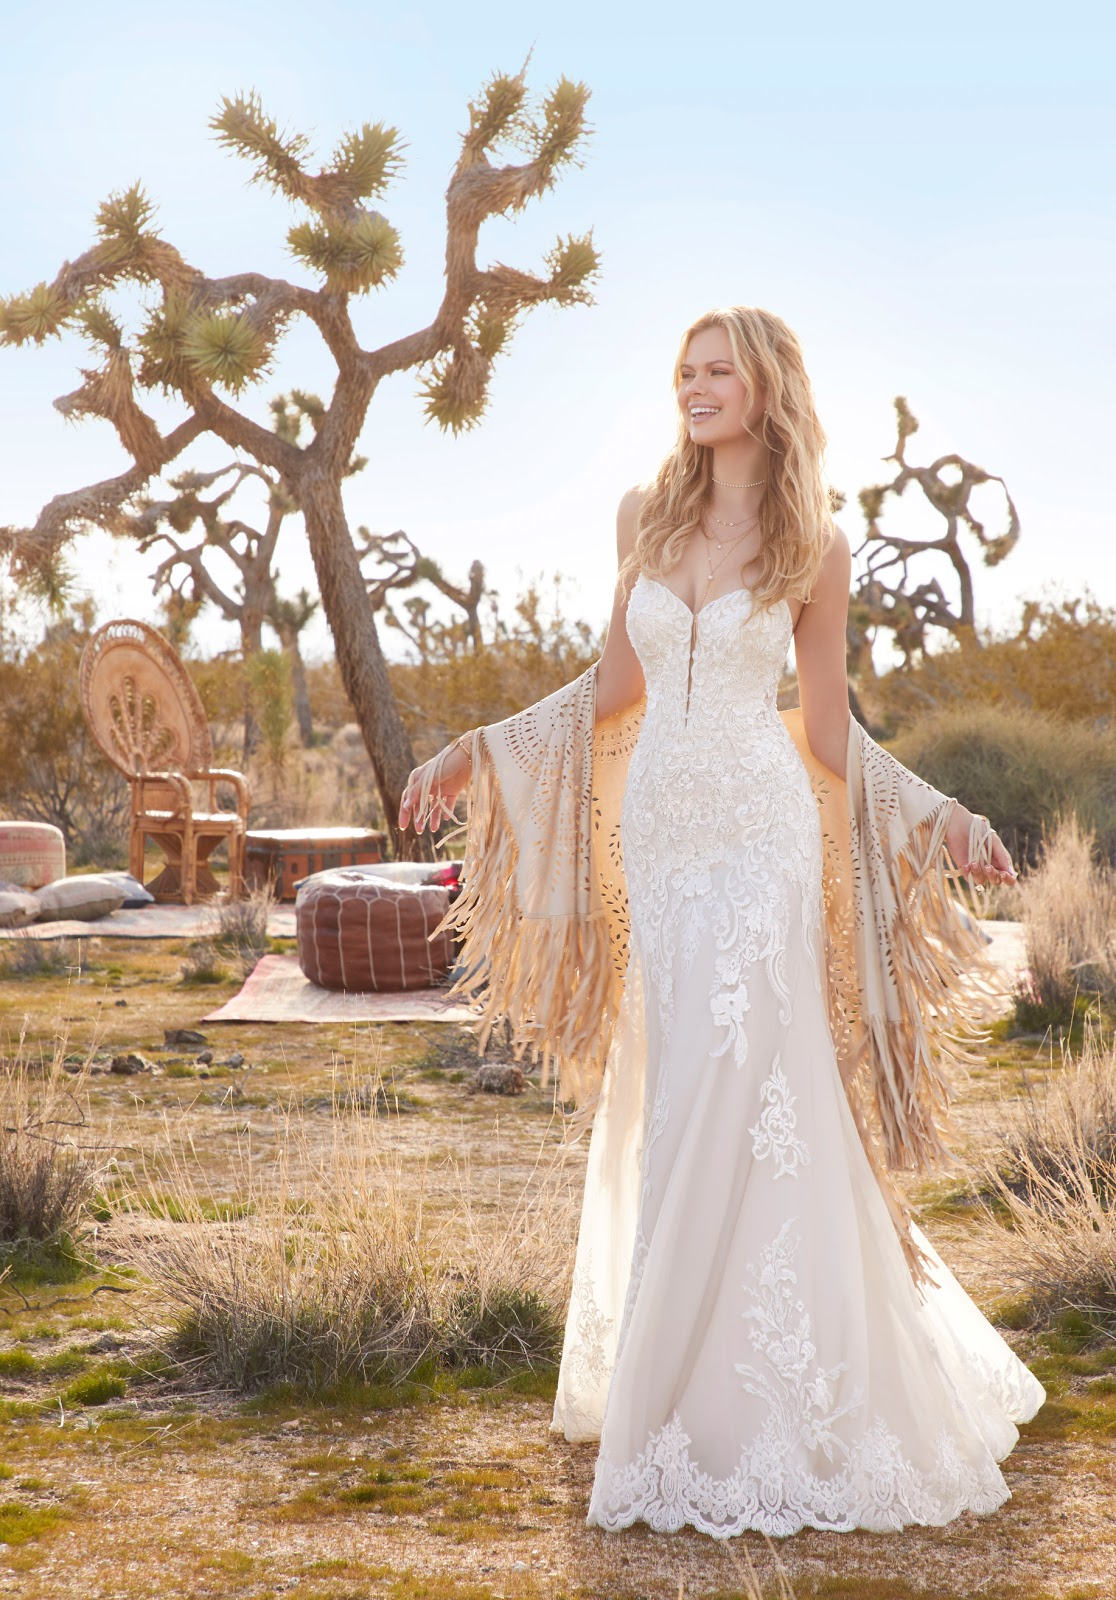 Top 10 Wedding Dress Designers in 2019